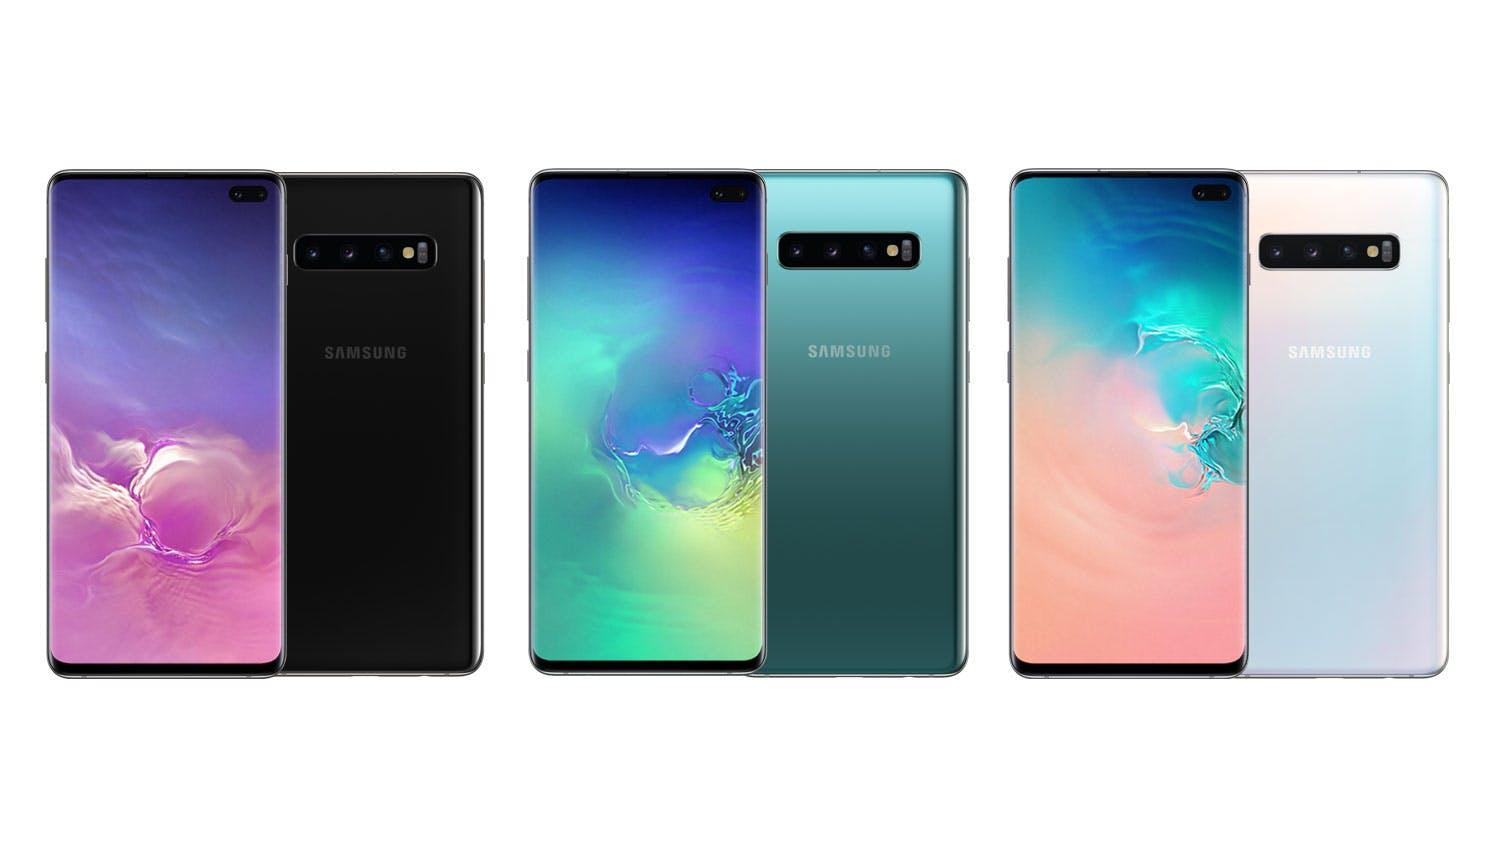 Get Your Hands on the Samsung Galaxy S10+ at Harvey Norman